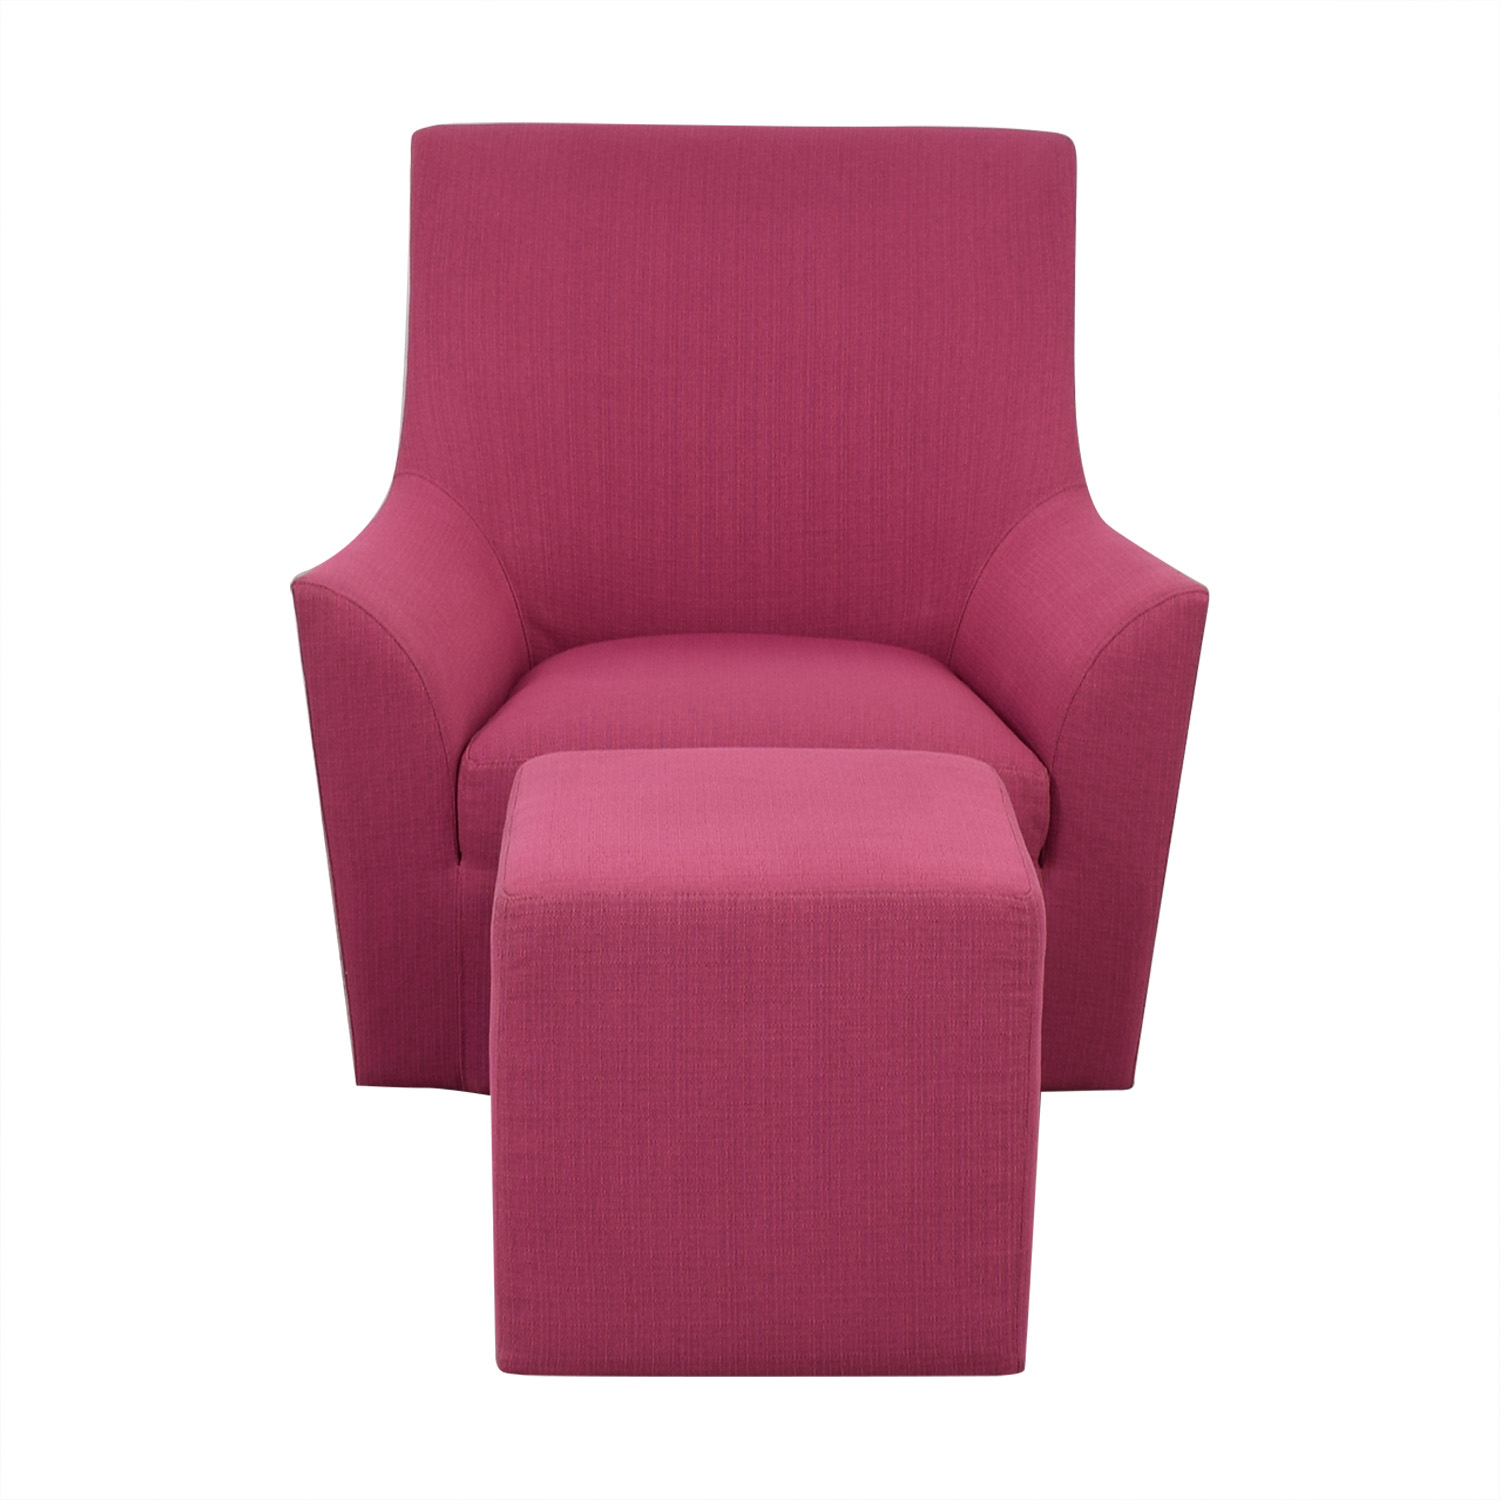 buy ABC Carpet & Home ABC Carpet & Home Chair and Ottoman online